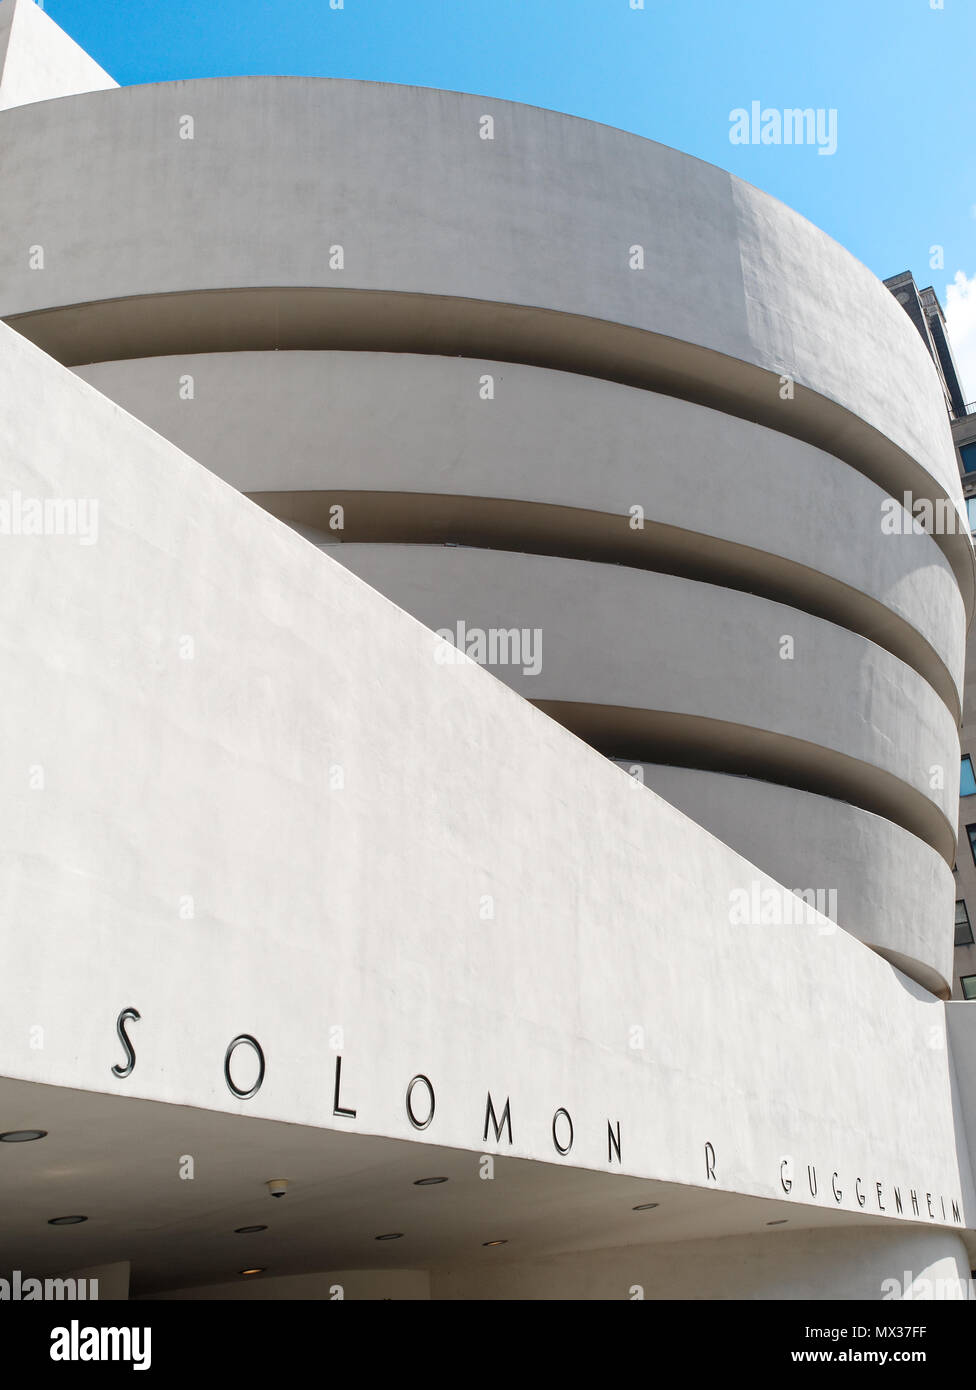 New York City, USA - April 2018: the Guggenheim Museum at Central Park - Stock Image